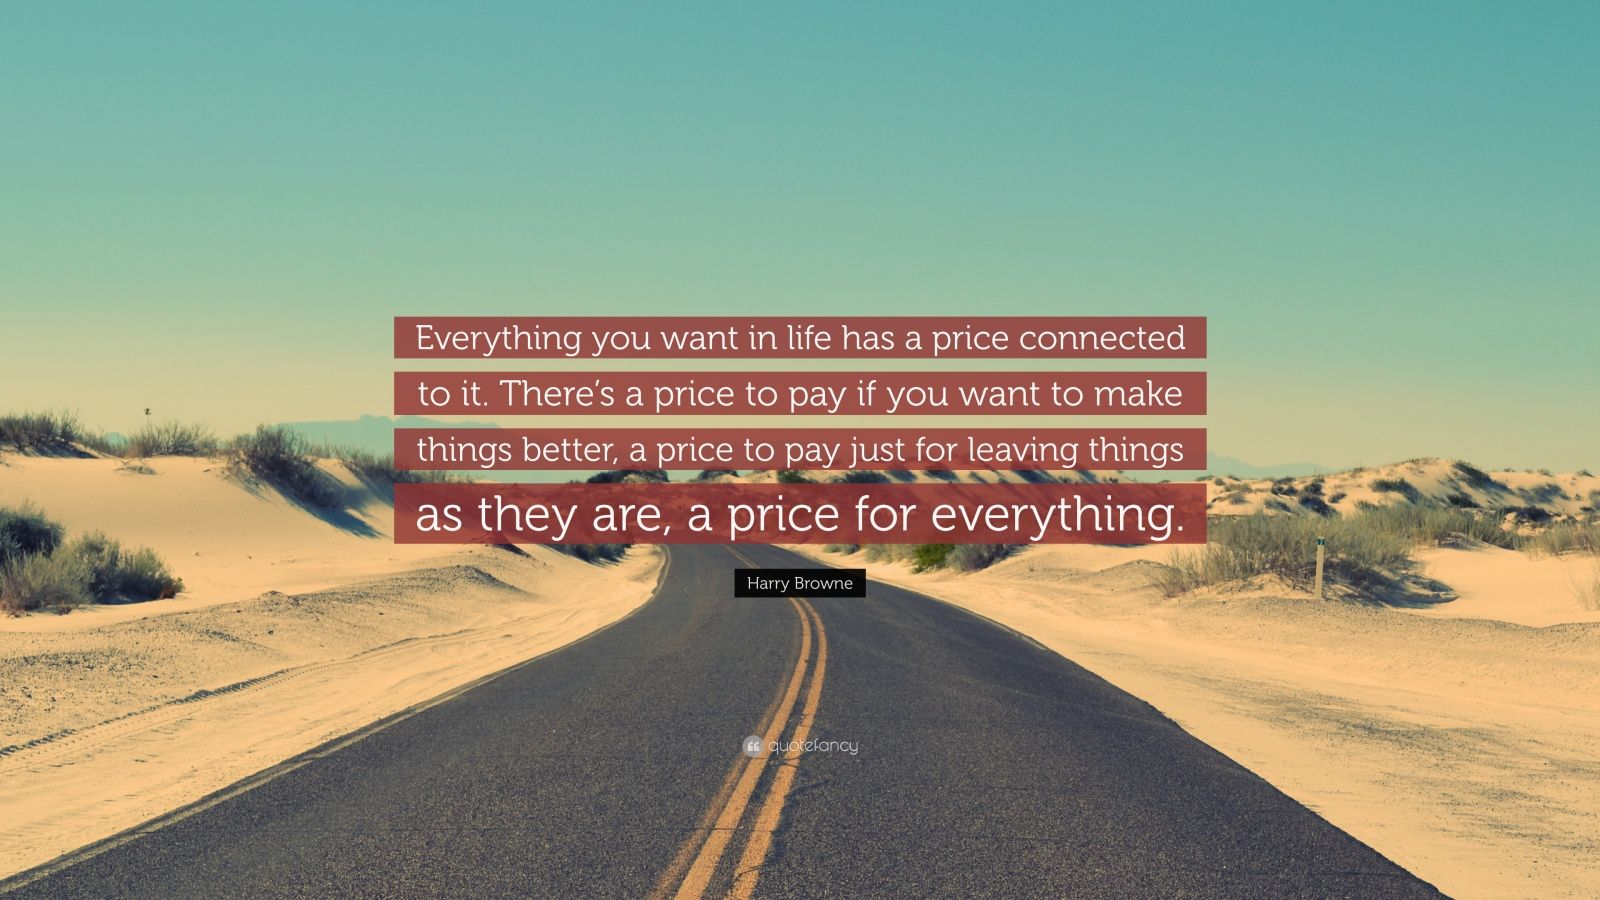 "Harry Browne Quote: ""Everything you want in life has a price connected to it. There's a price to pay if you want to make things better, a price to pay just for leaving things as they are, a price for everything."""